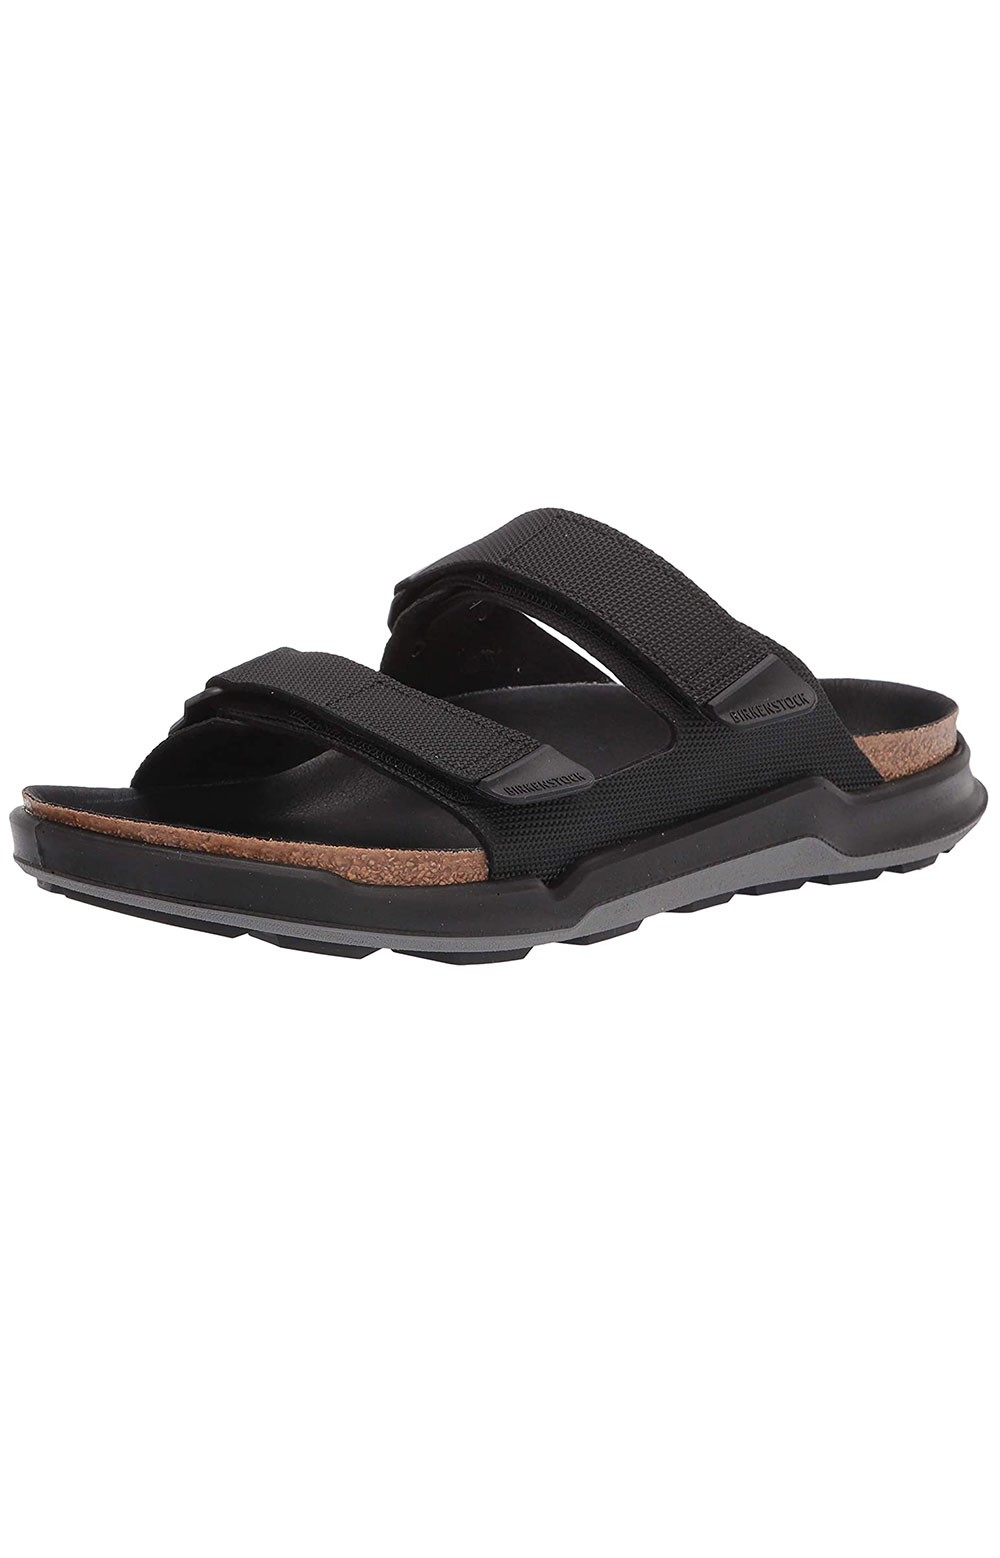 (1013755) Atacama Sandals - Future Black 6